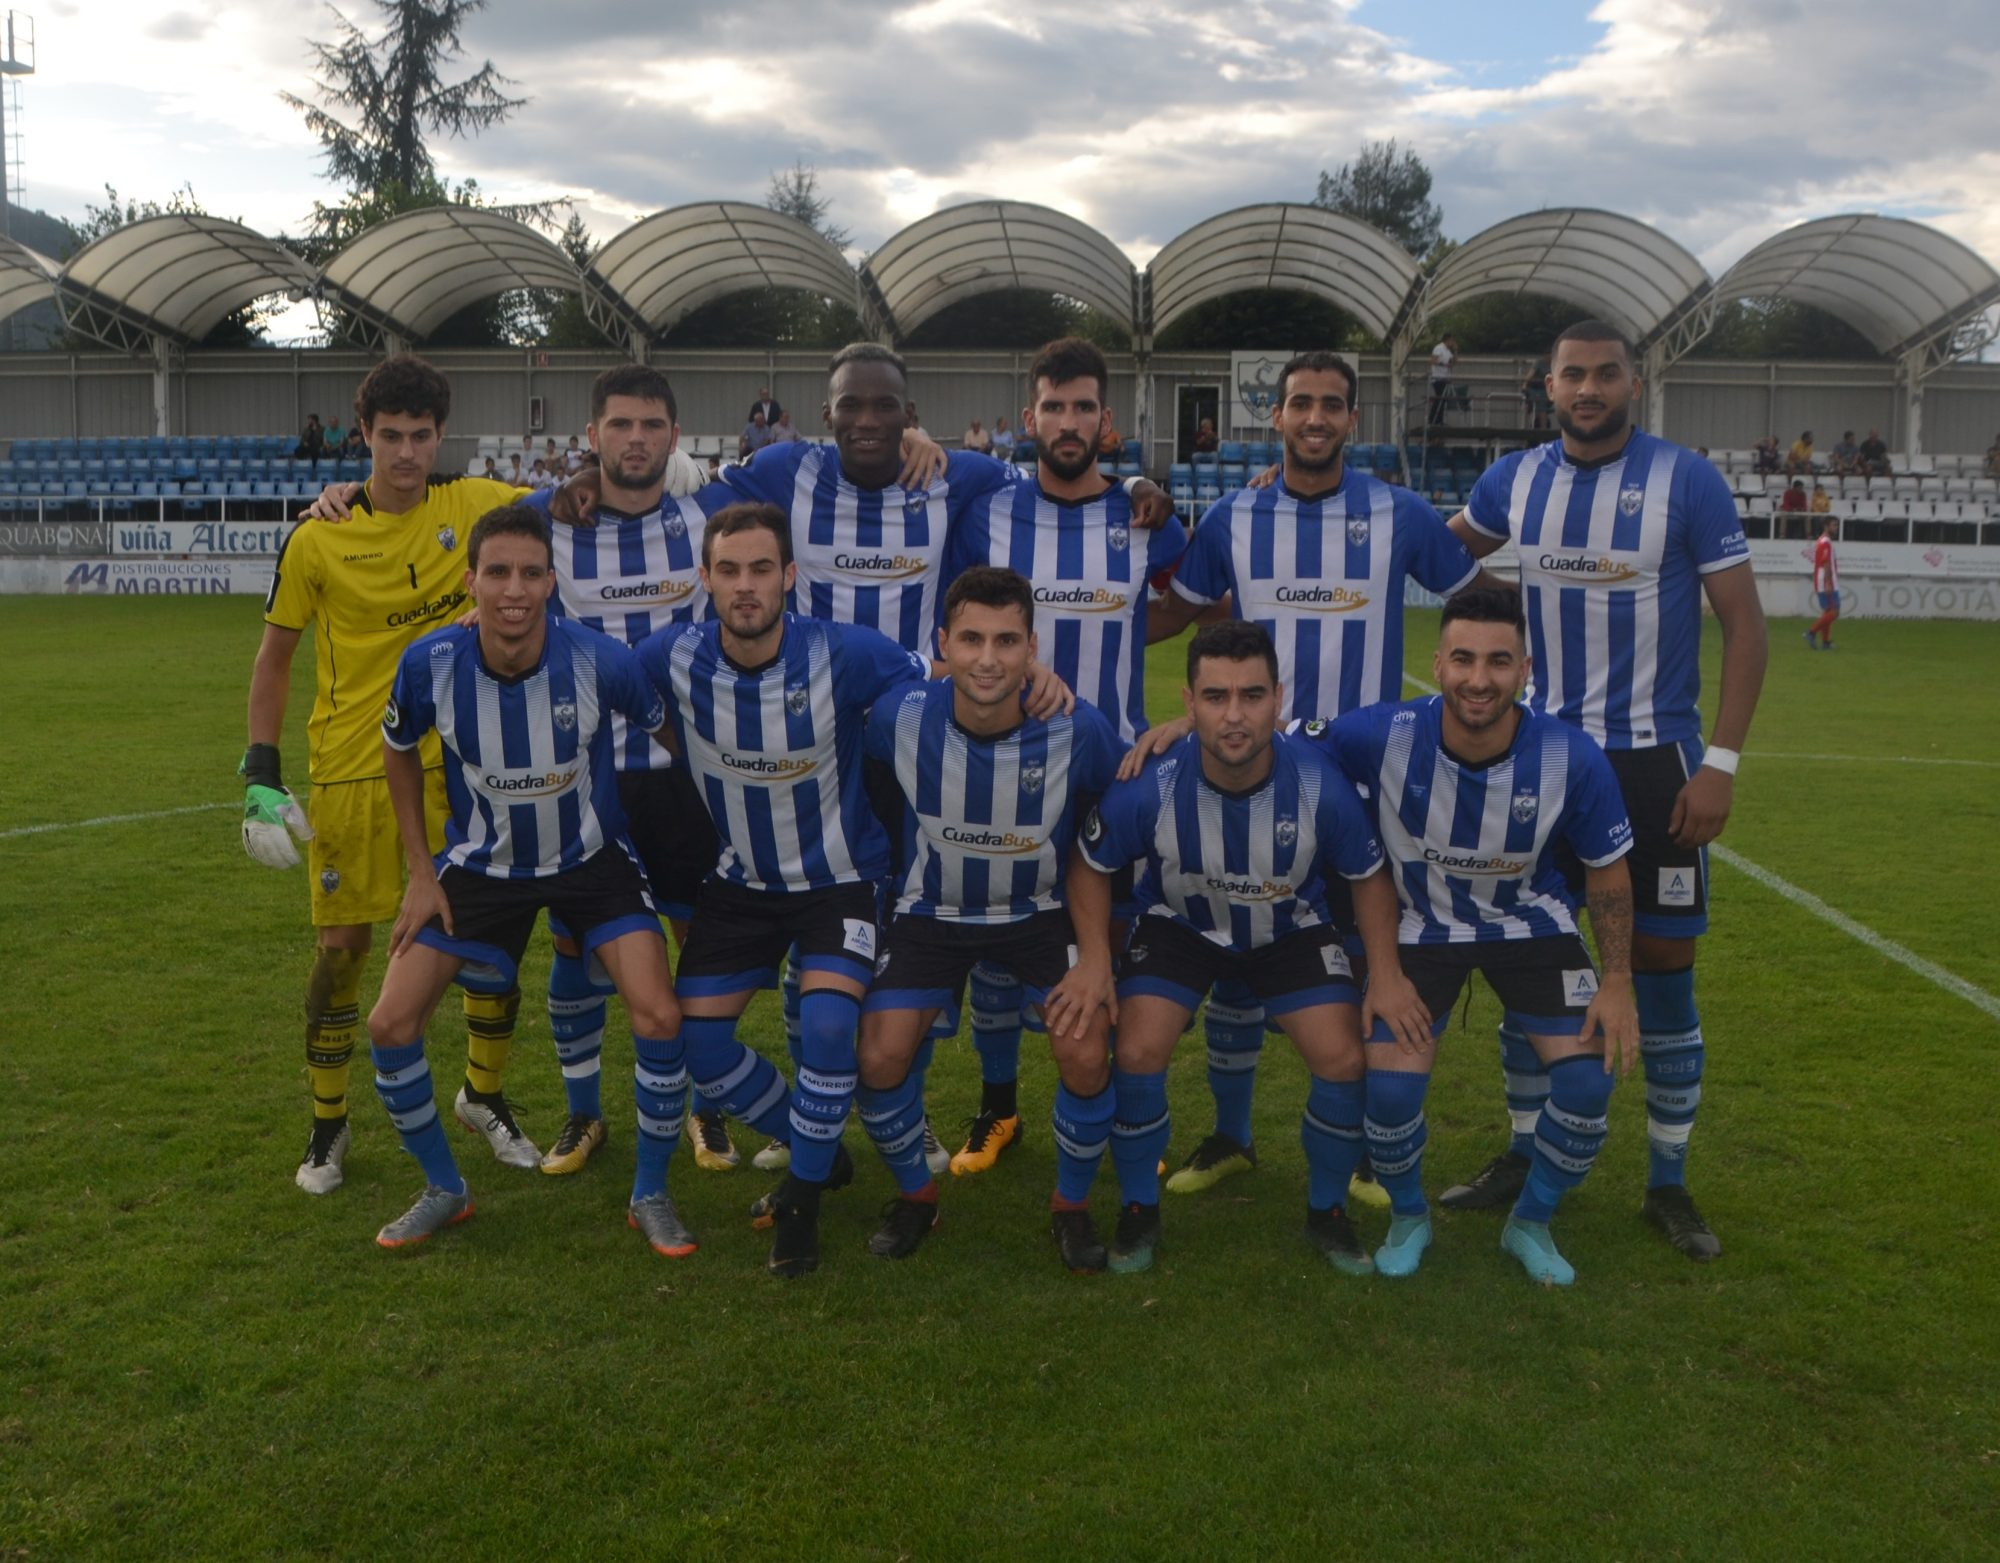 EQUIPO INICIAL